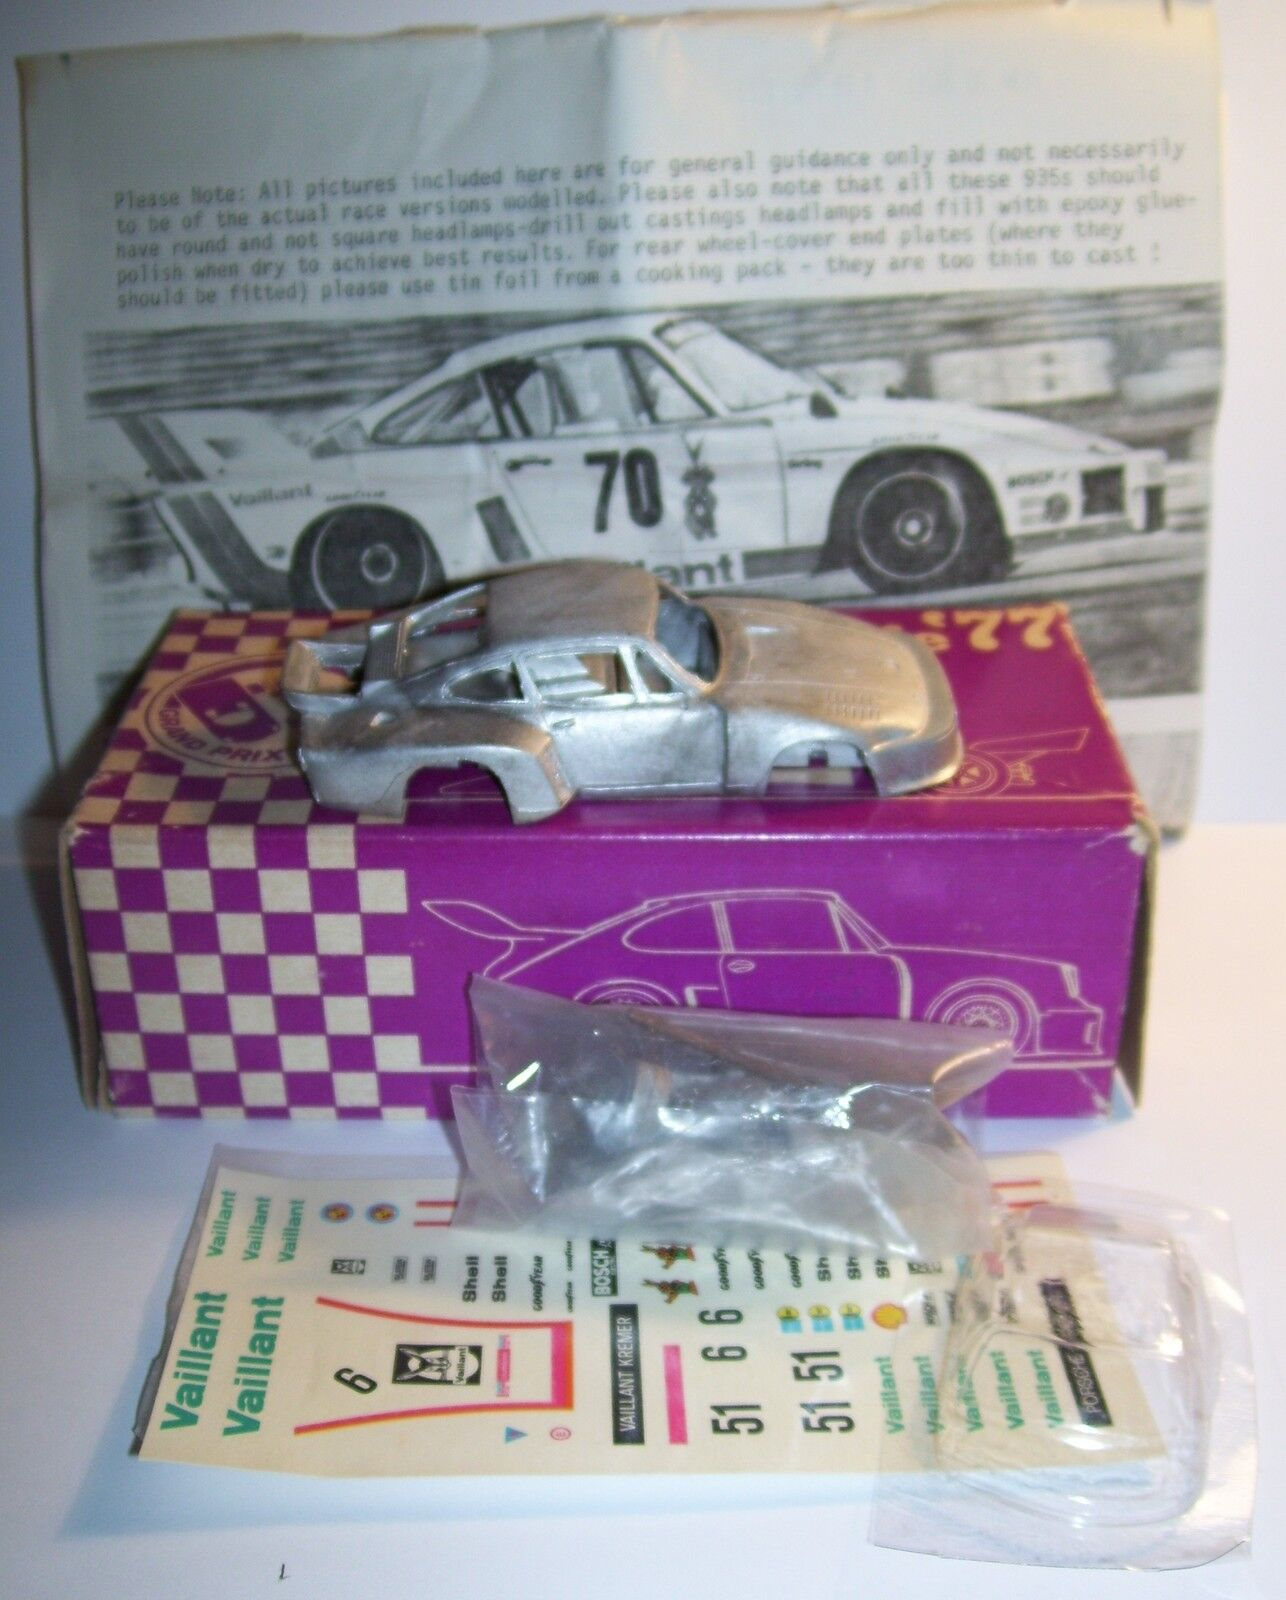 RARE KIT METAL GRAND PRIX MODELS SERIE 77 VAILLANT KREMER SEKURIT PORSCHE 935 77